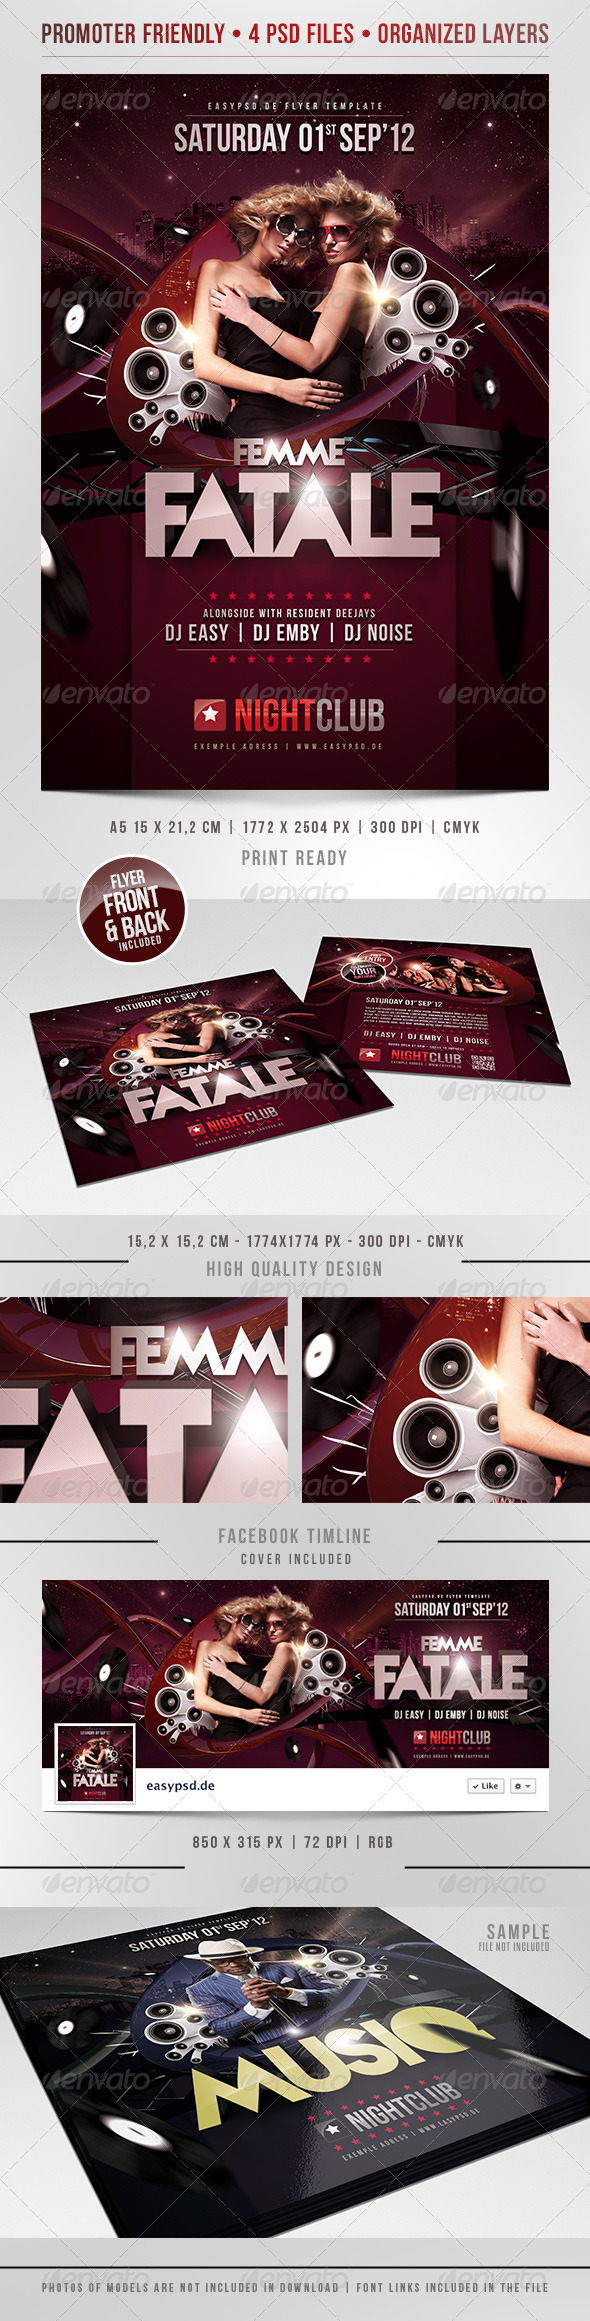 GraphicRiver Femme Fatale Flyer Template 2819730